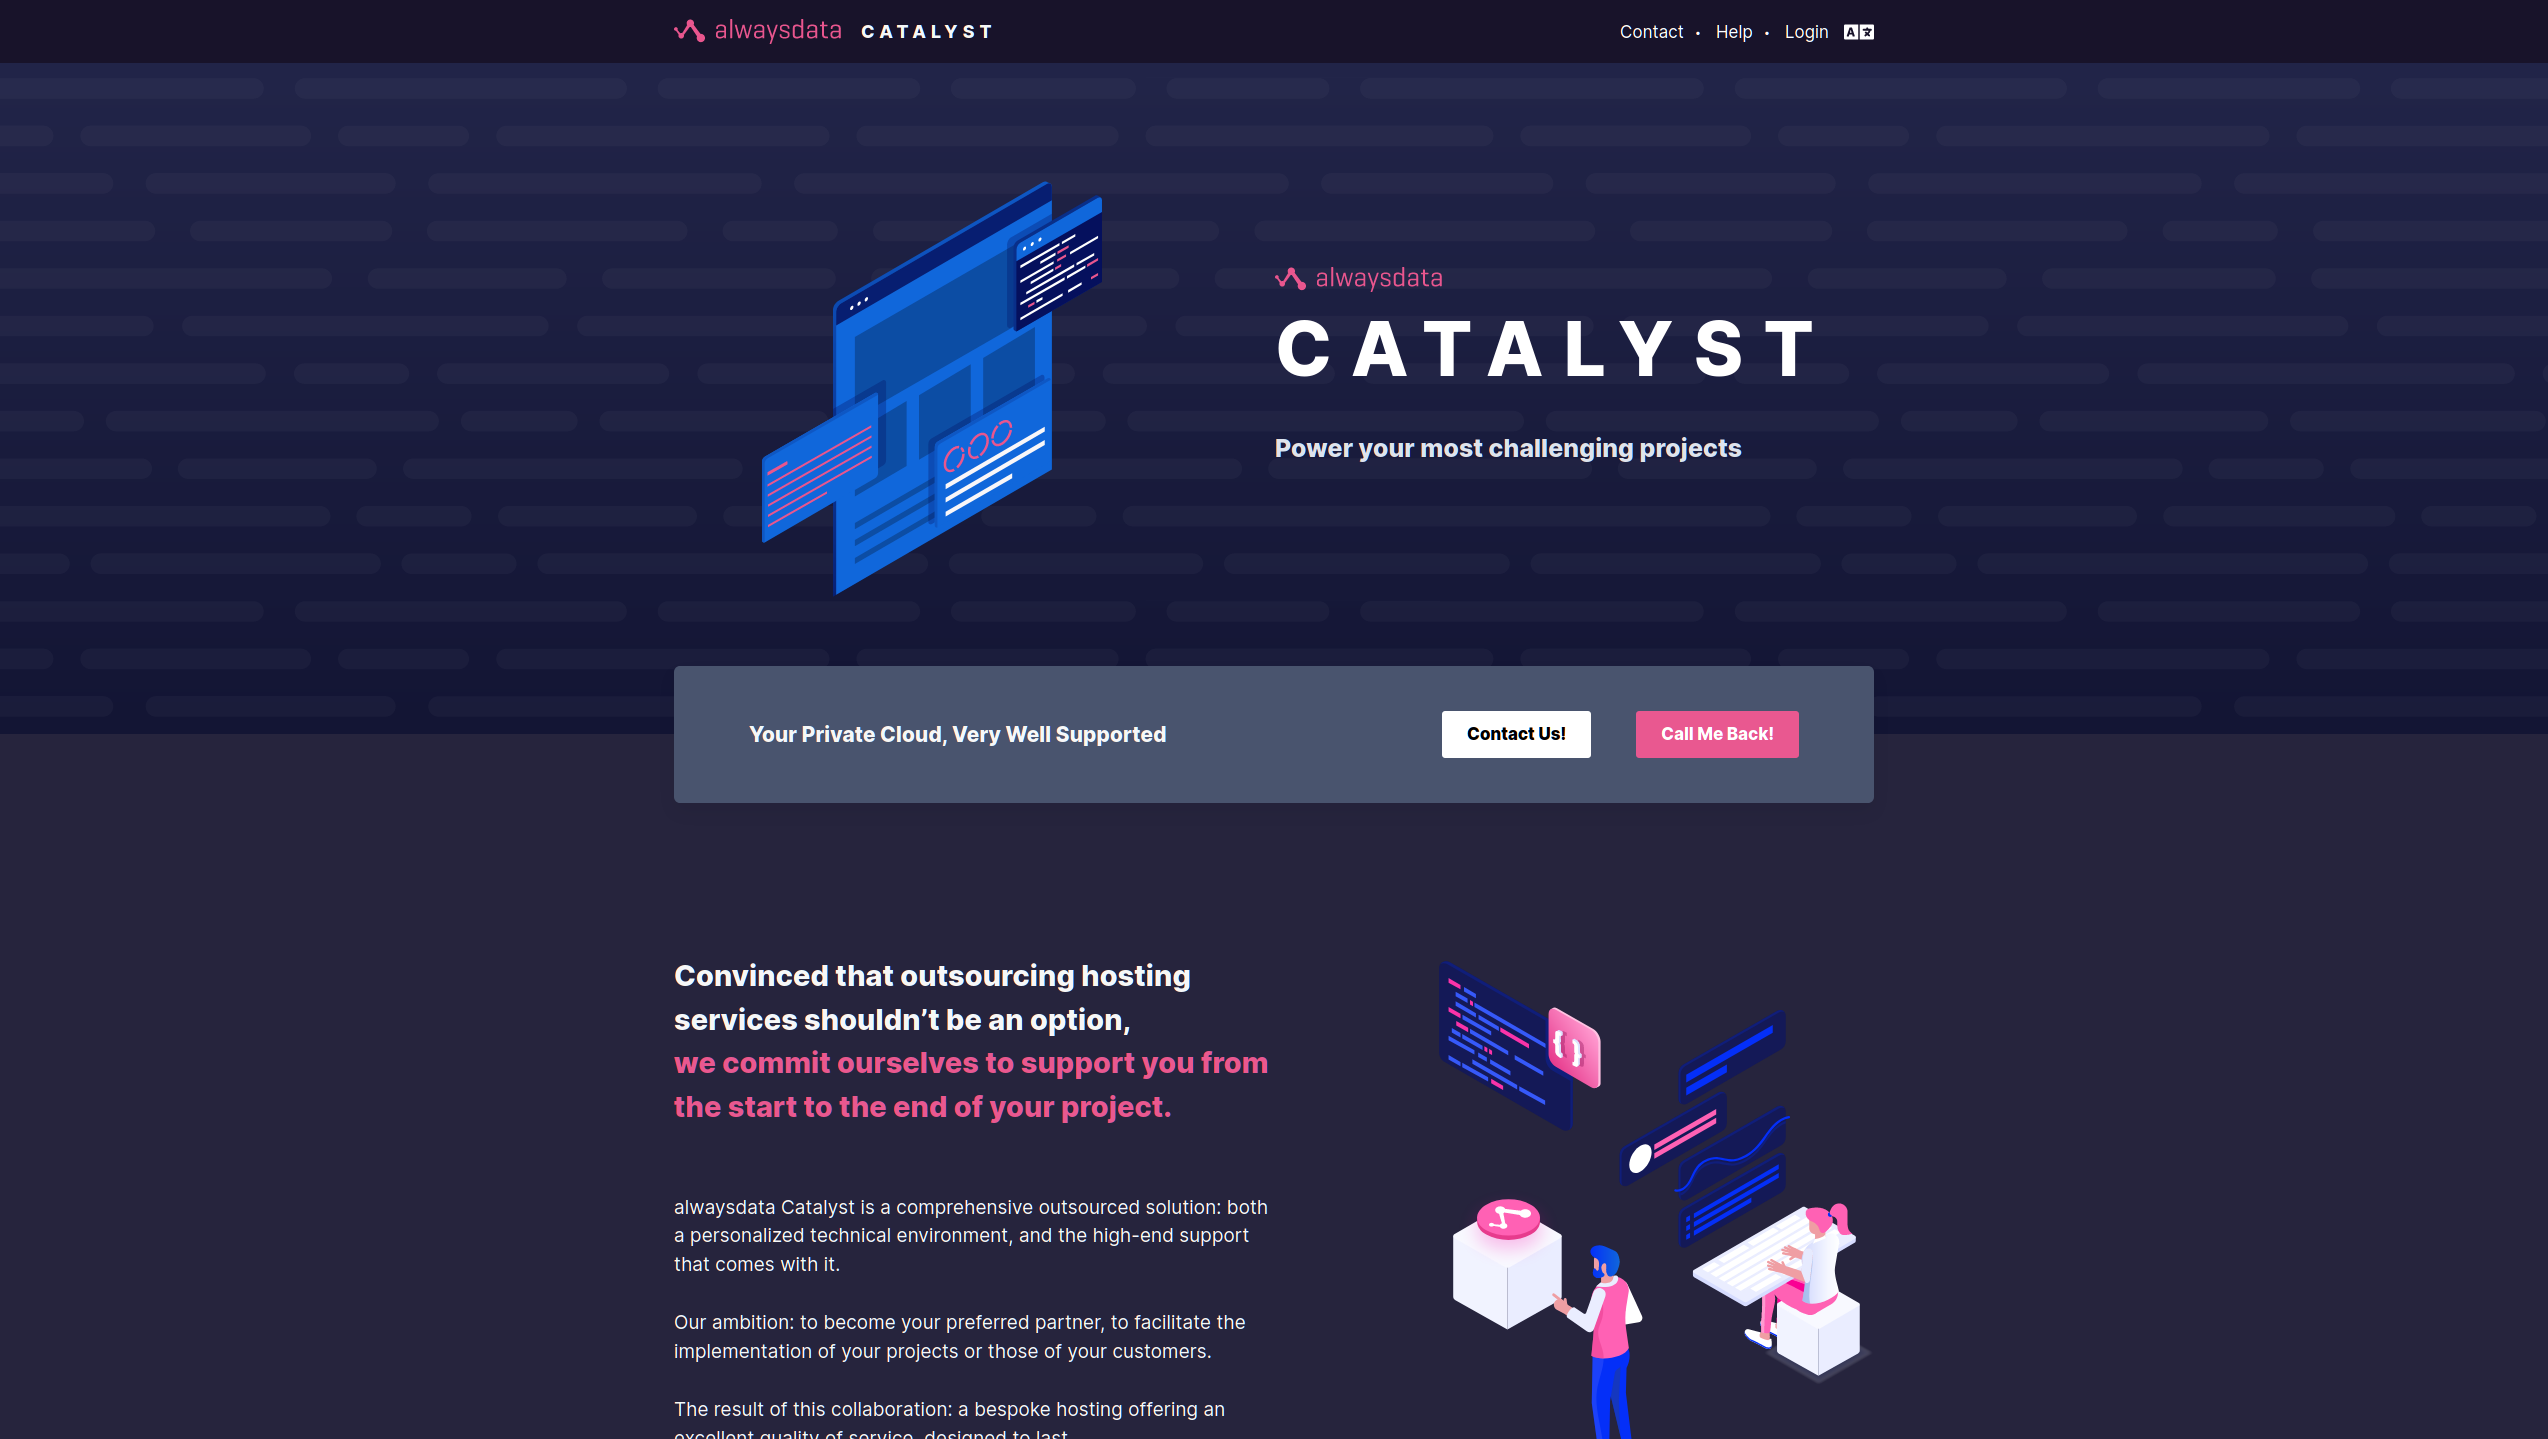 Welcome to the new world of Catalyst!